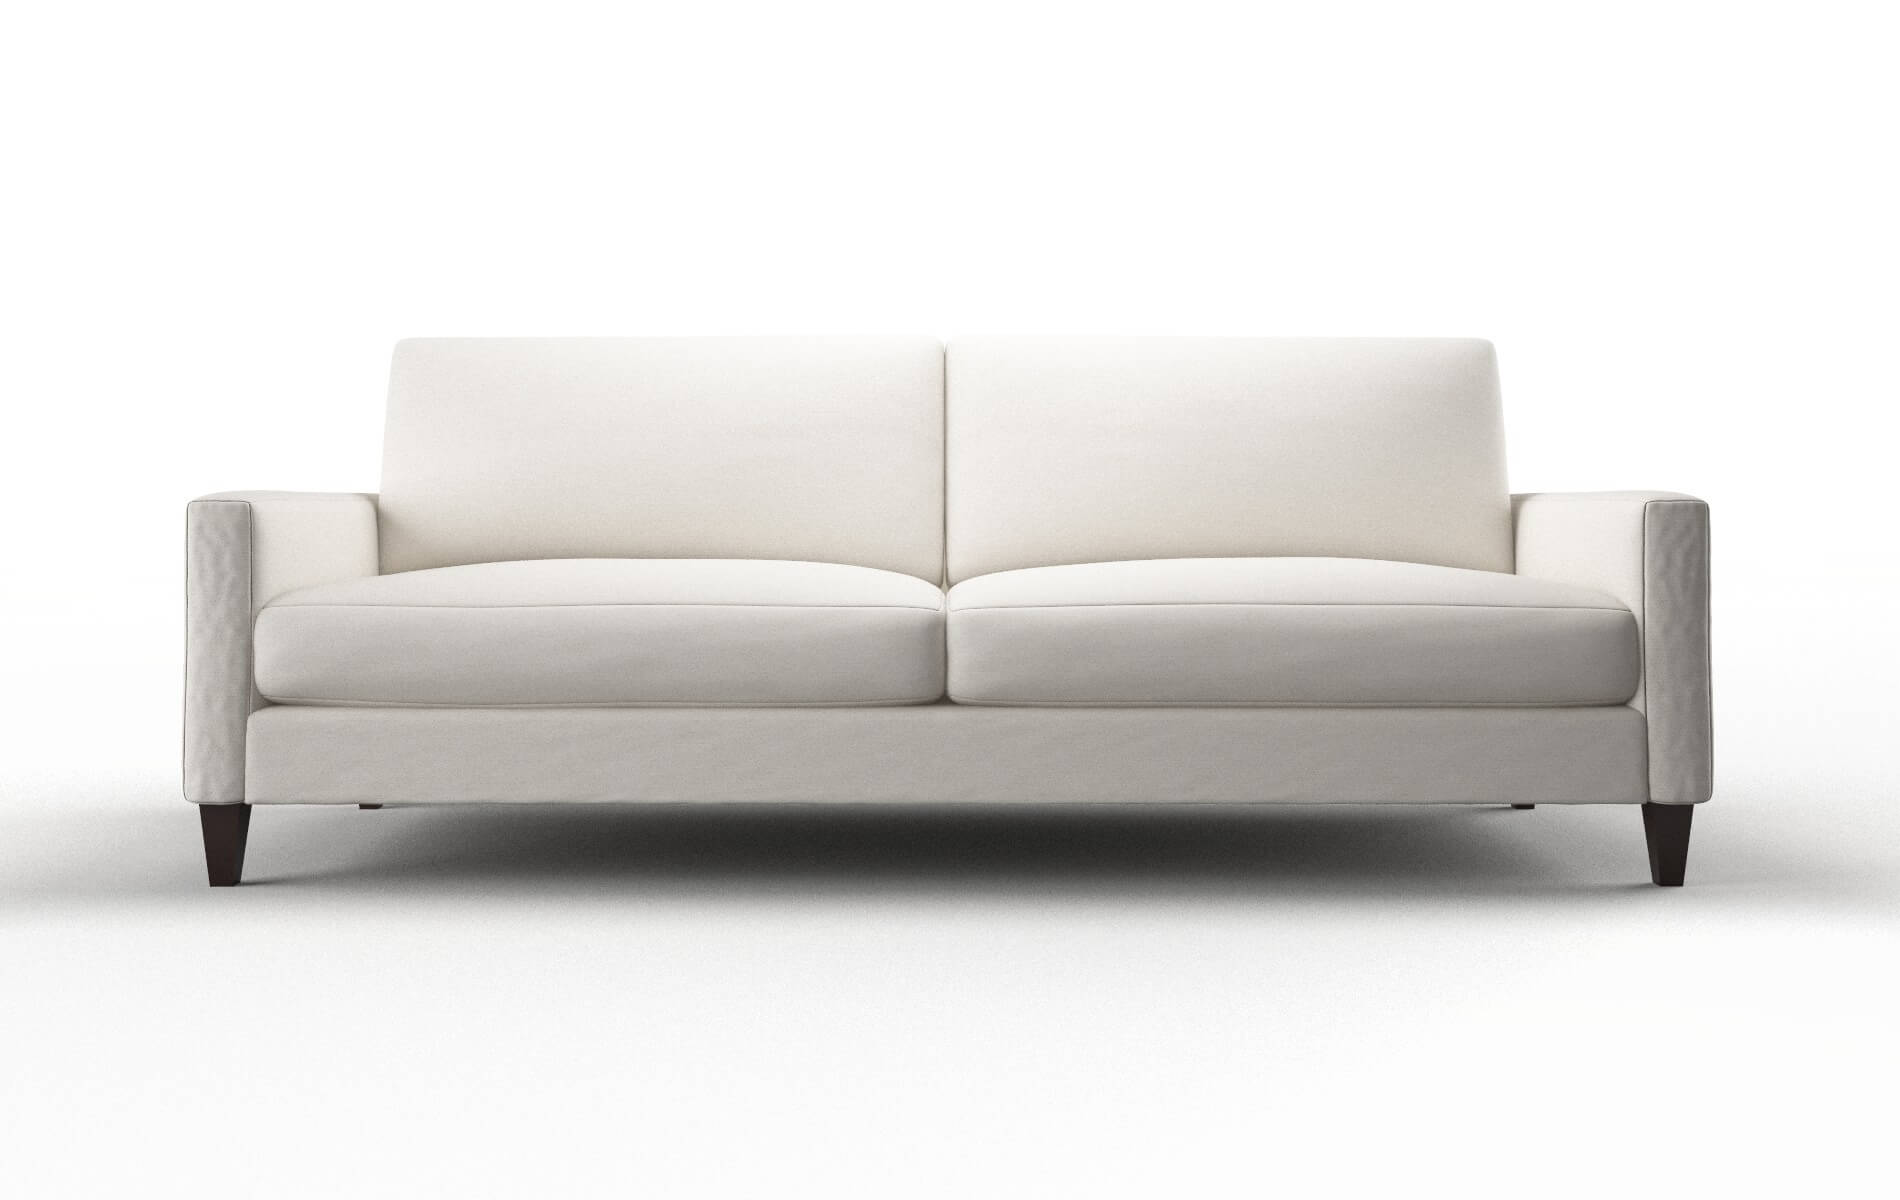 Eggshell Chair Cannes Venice Eggshell Sofa Dreamsofa